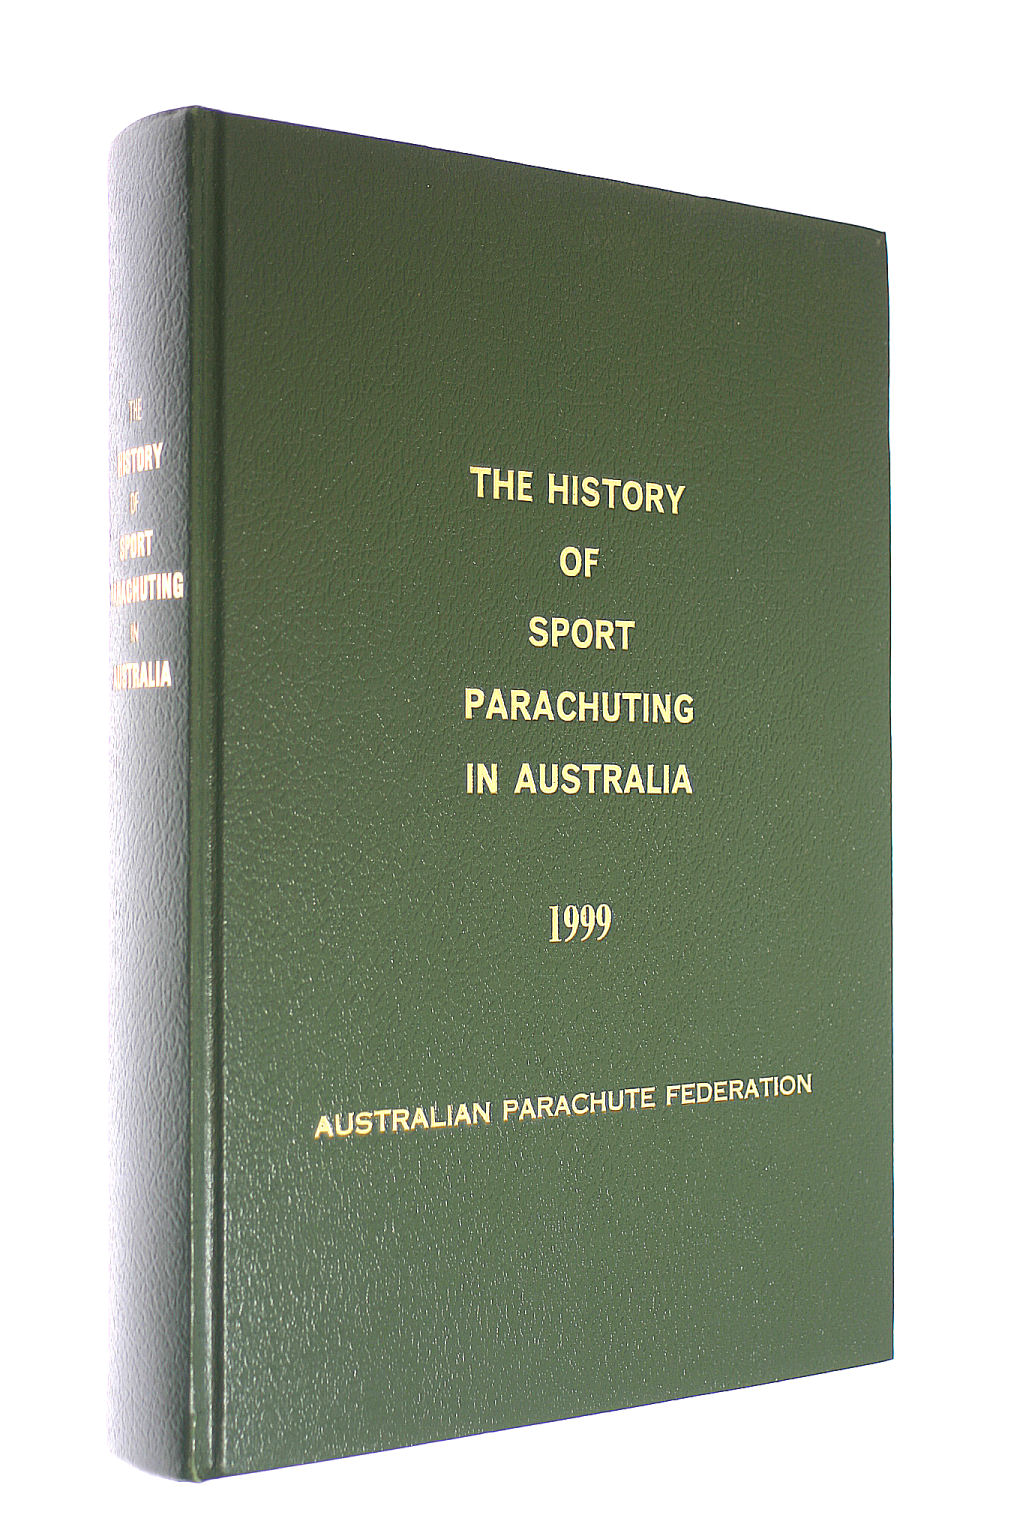 Image for The History of Parachuting in Australia